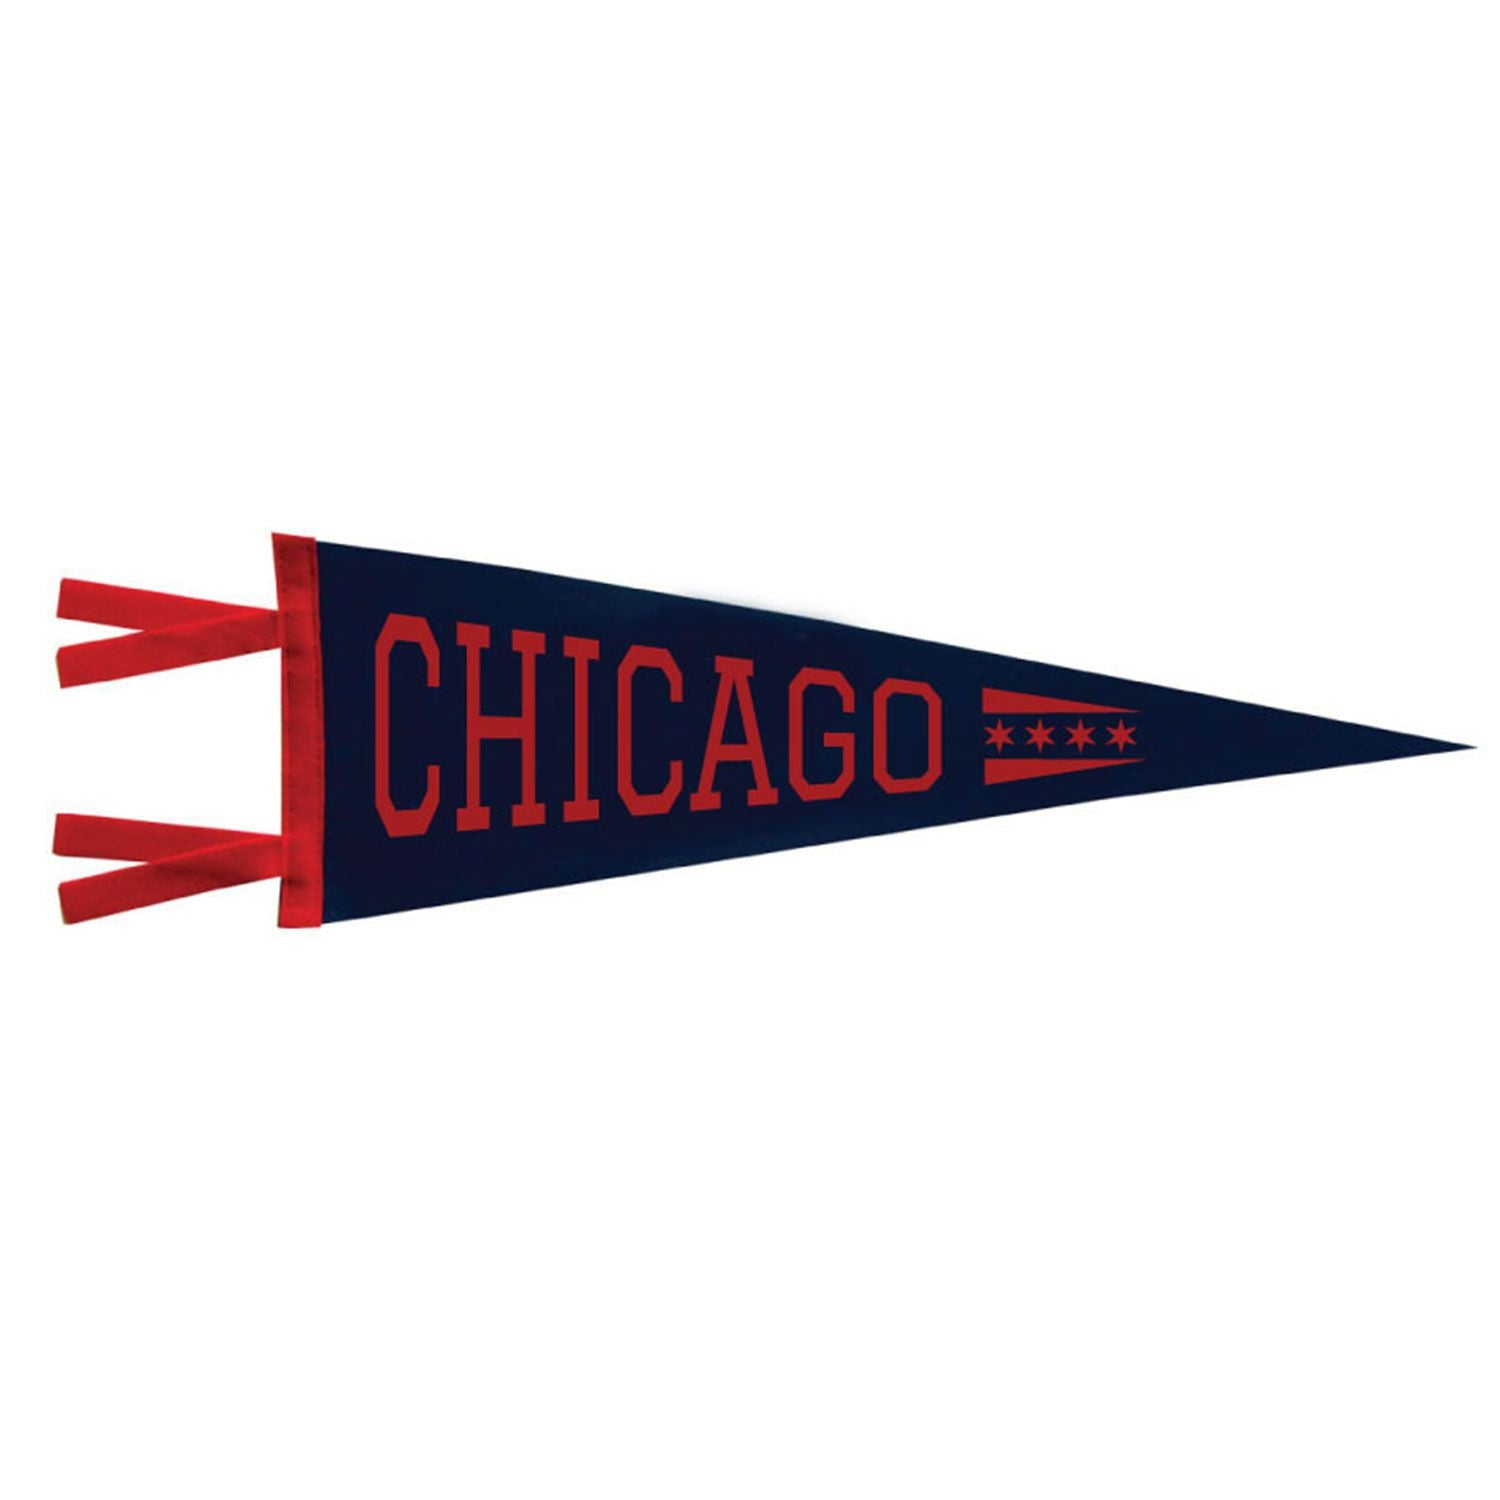 Chicago Pennant